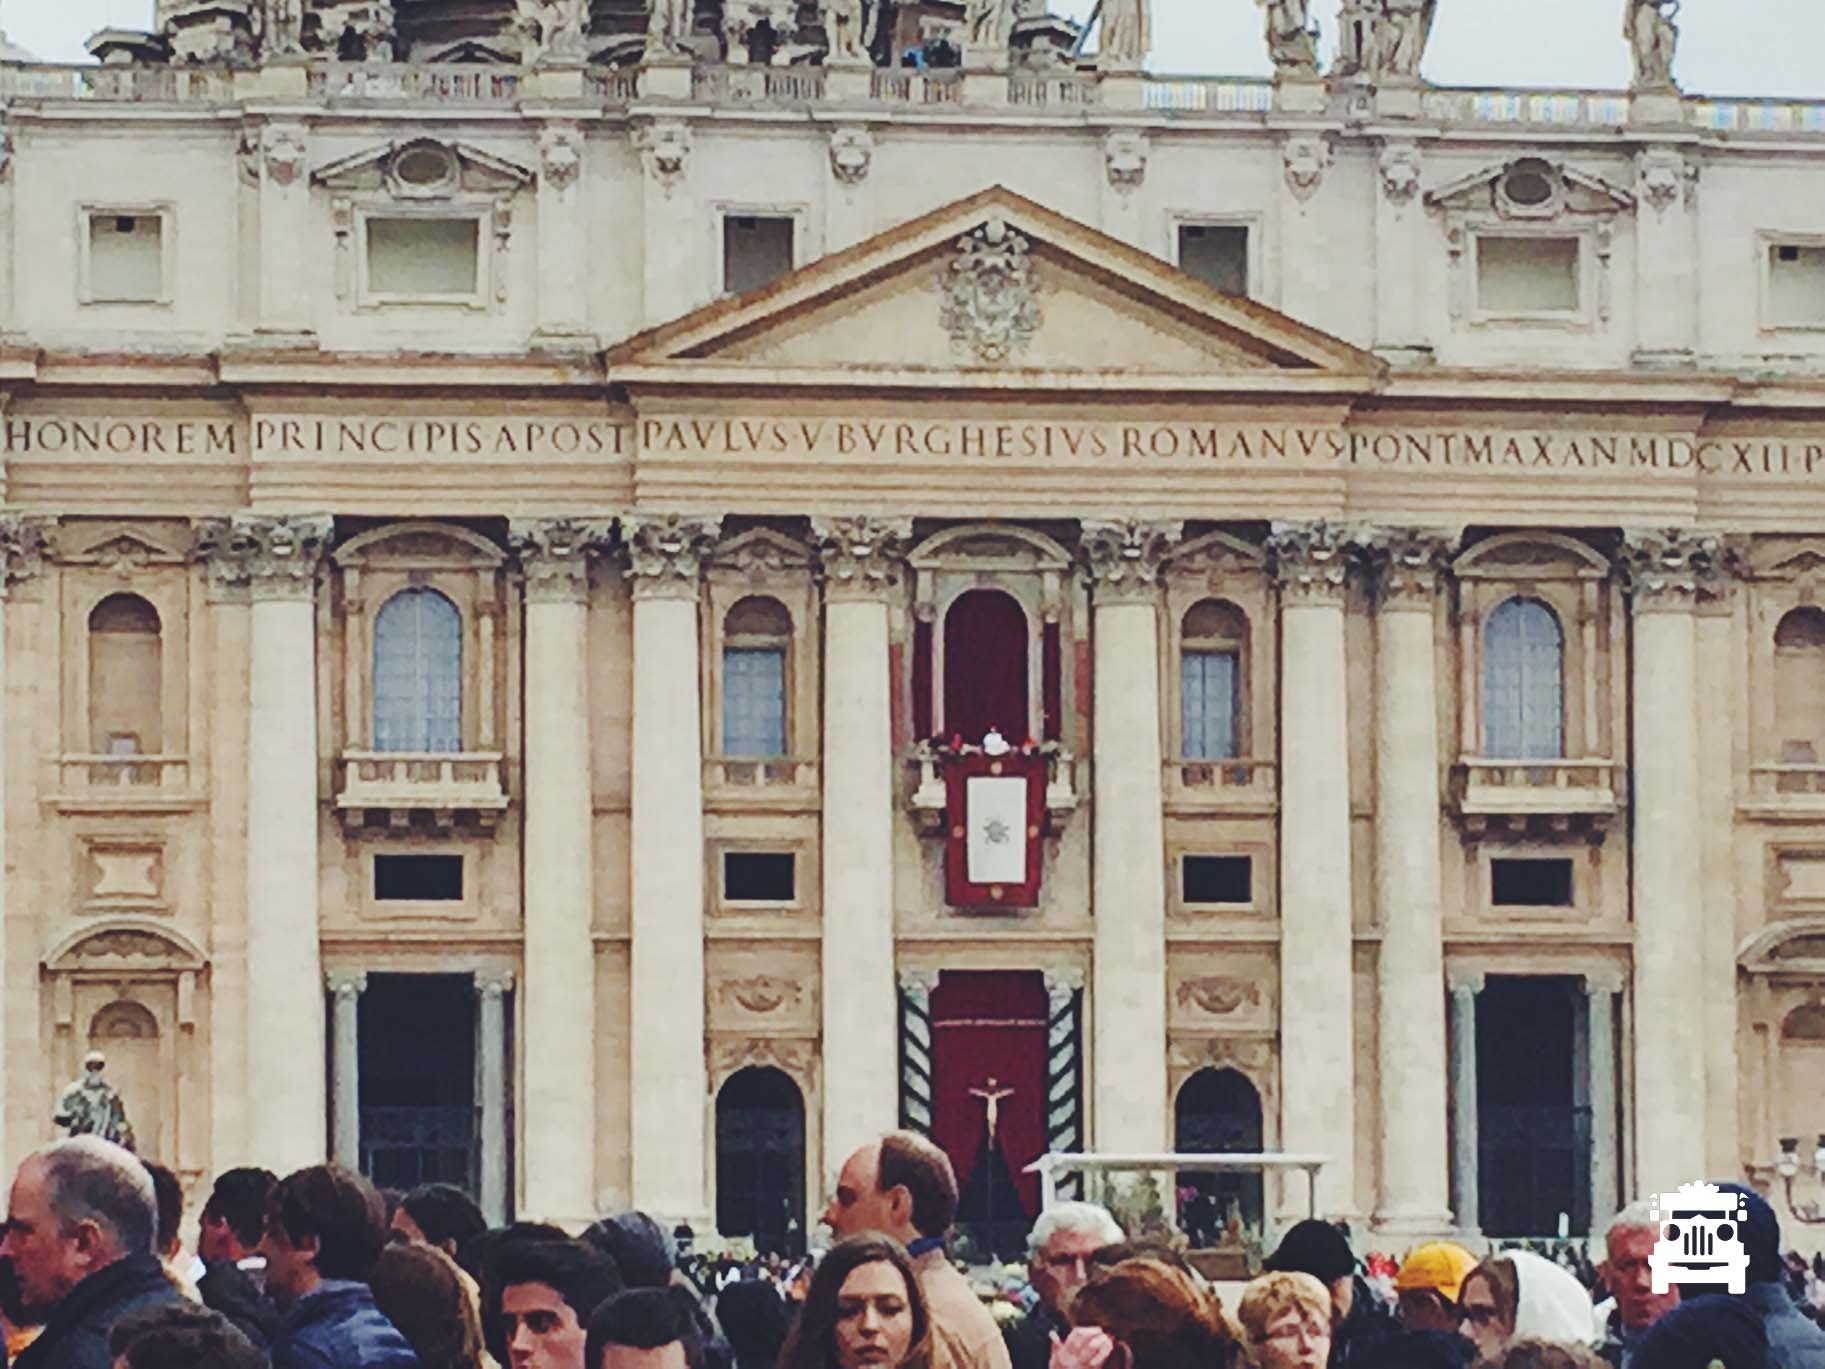 That white speck was the Pope lol